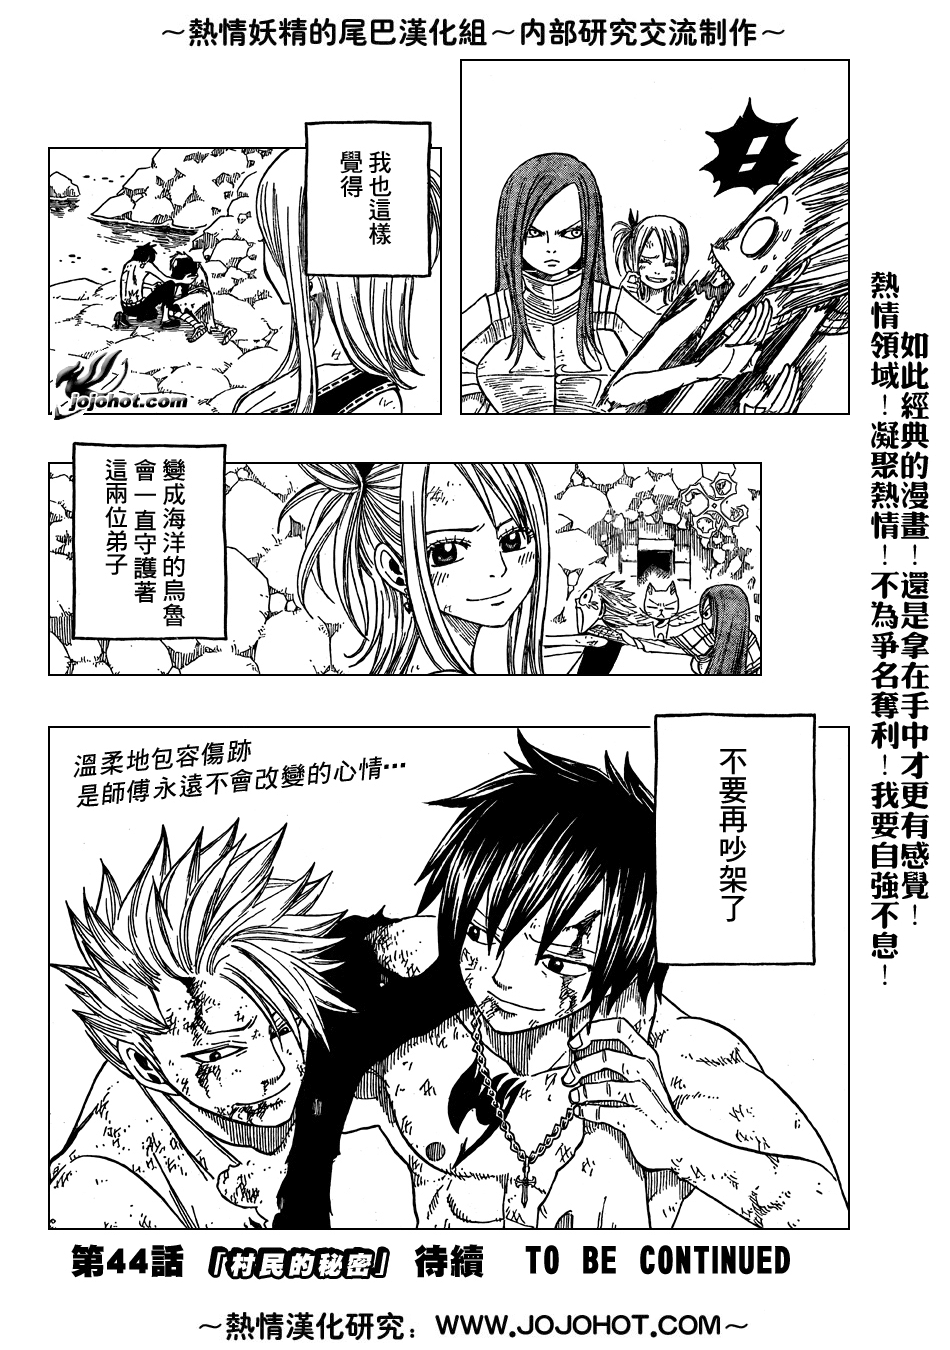 fairytail_43_19